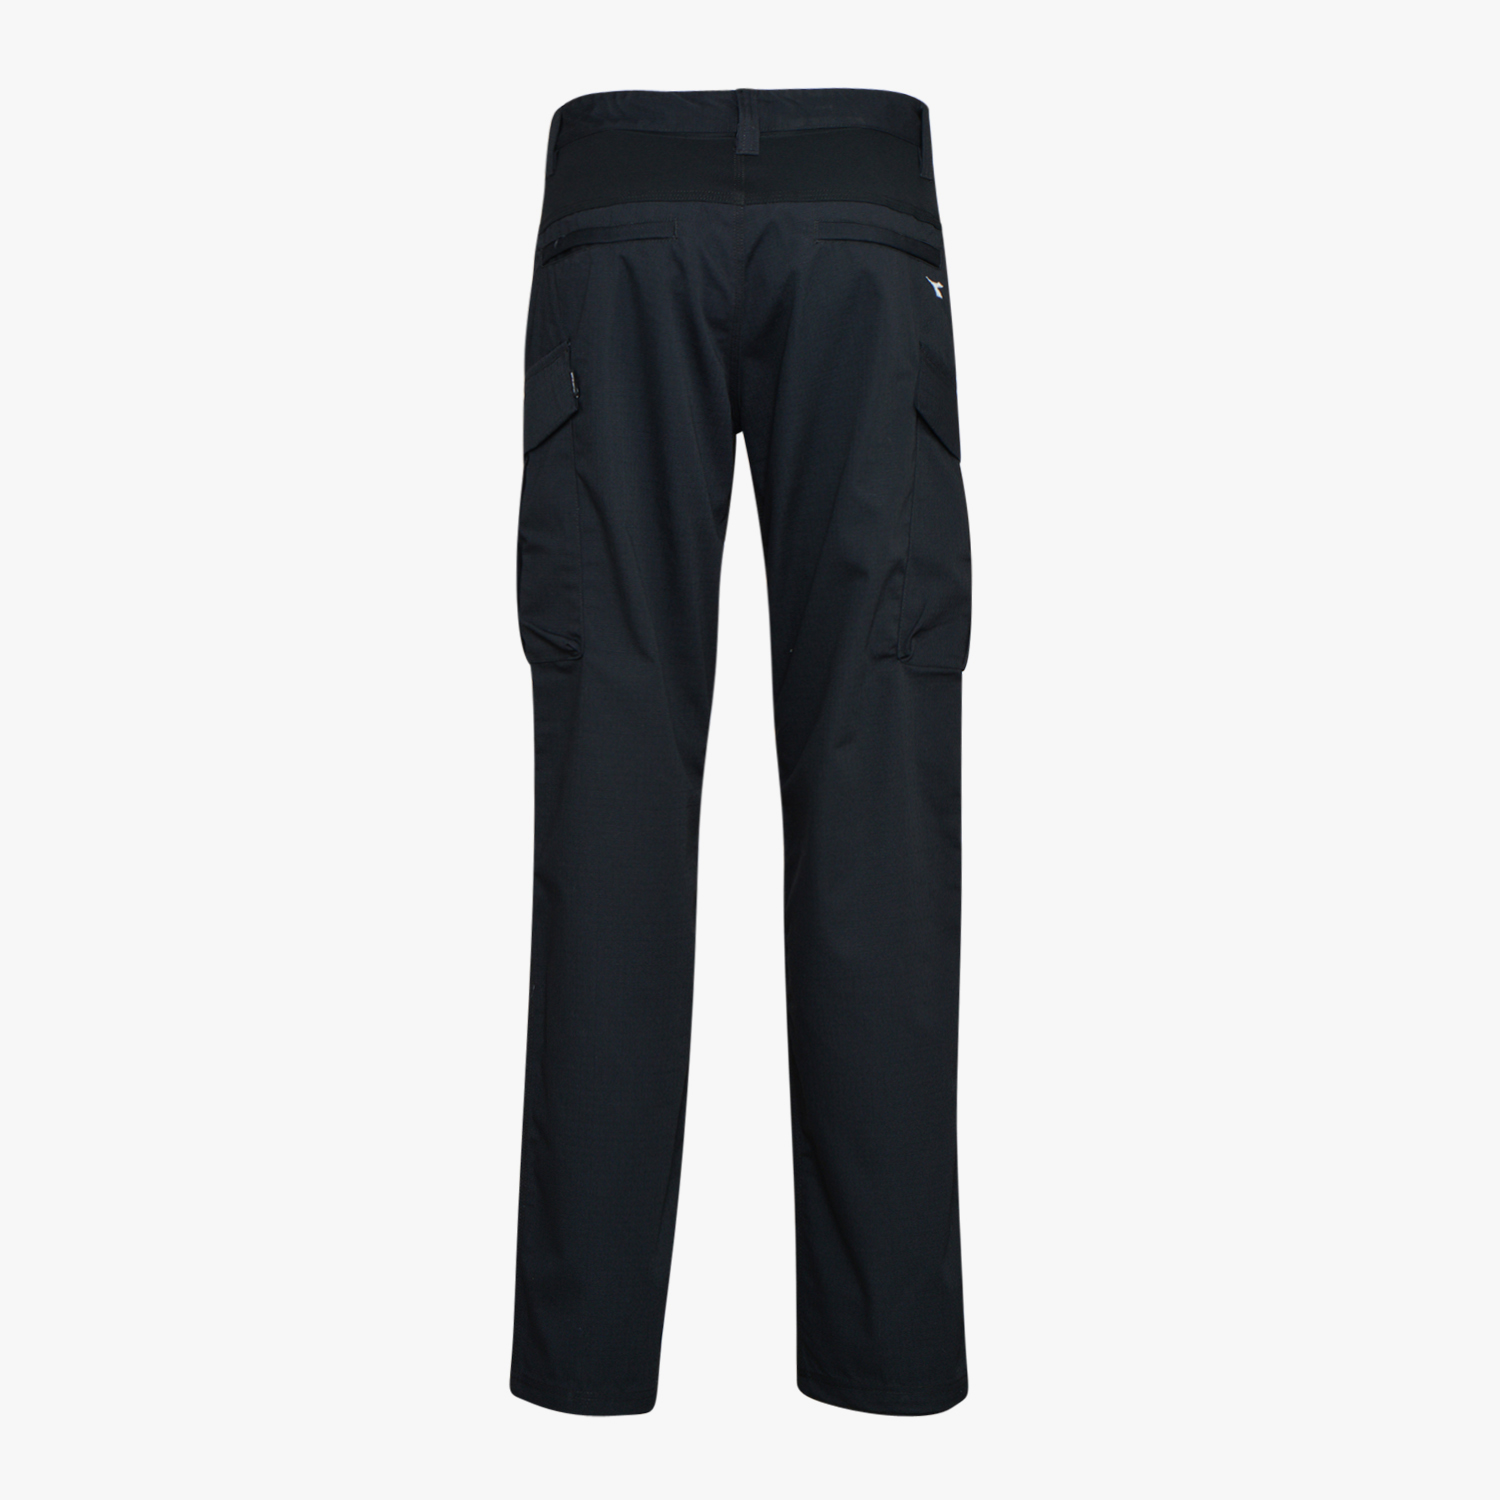 167af51a6d CARGO RIPSTOP PANTS ISO 13688:2013